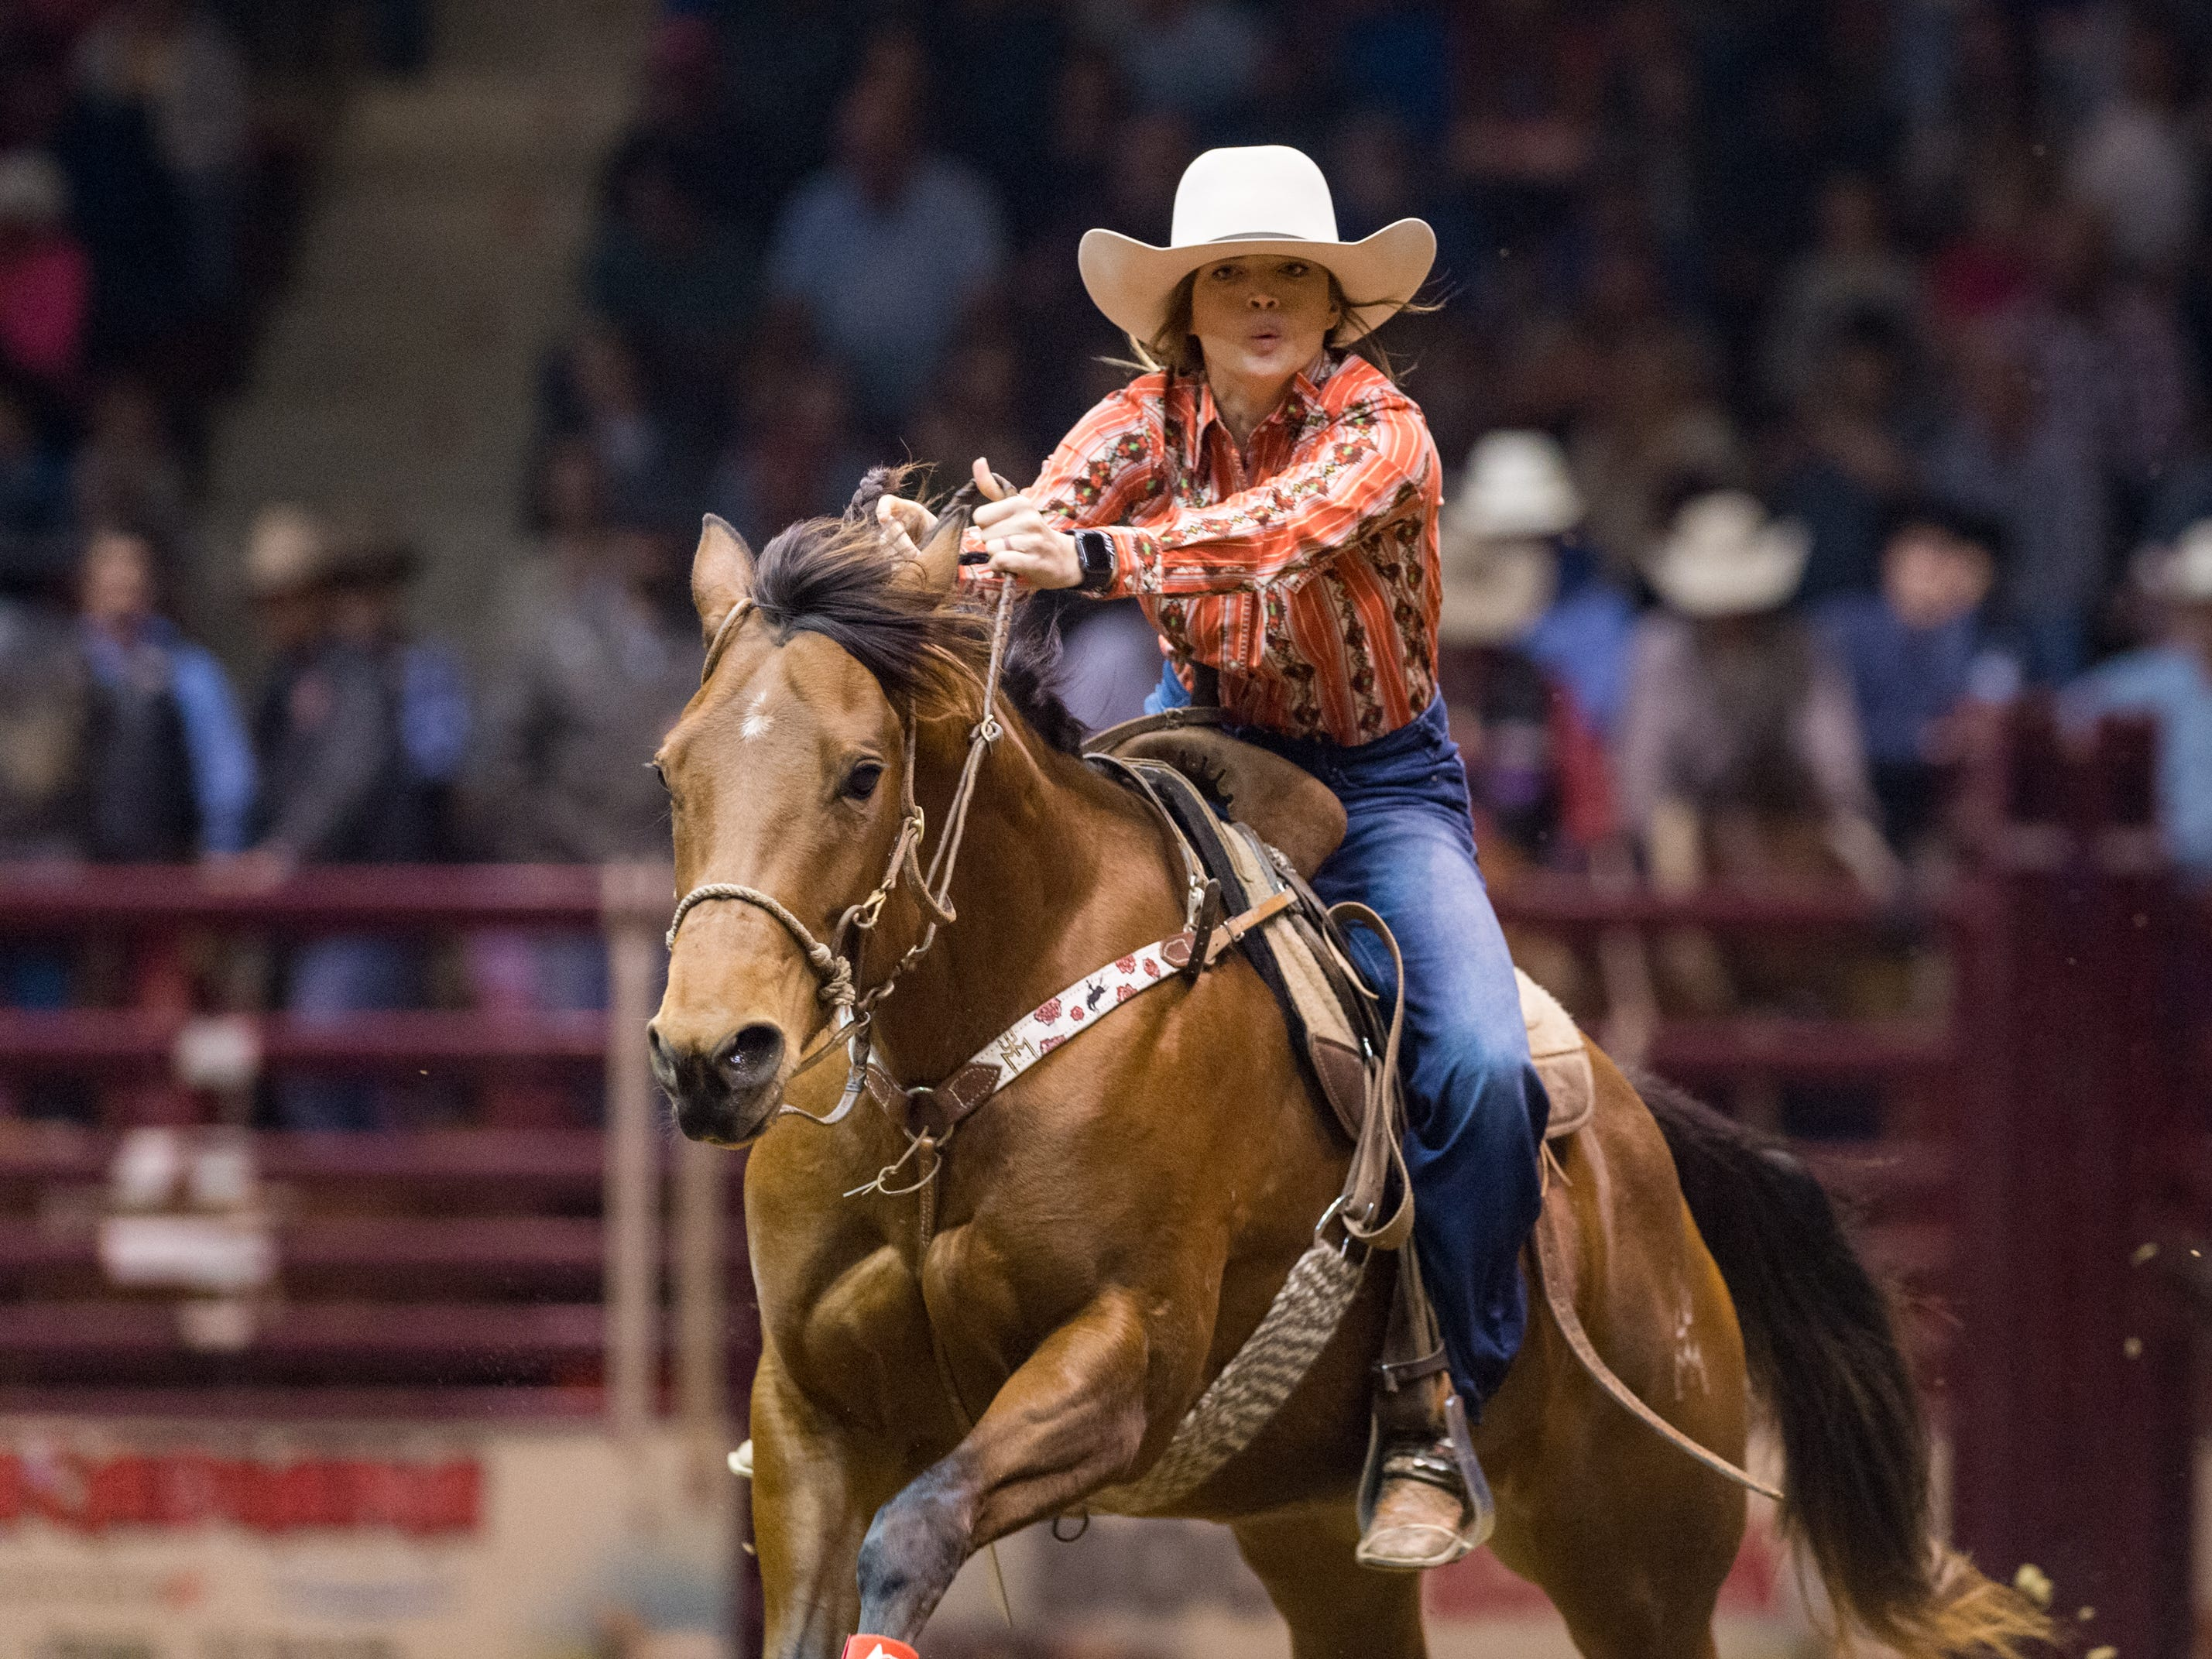 Barrel racer Meagan Laviolette from Rayne, LA. competing at the Mid Winter Fair and Pro Rodeo at Blackham Coliseum. Saturday, Jan. 12, 2019.